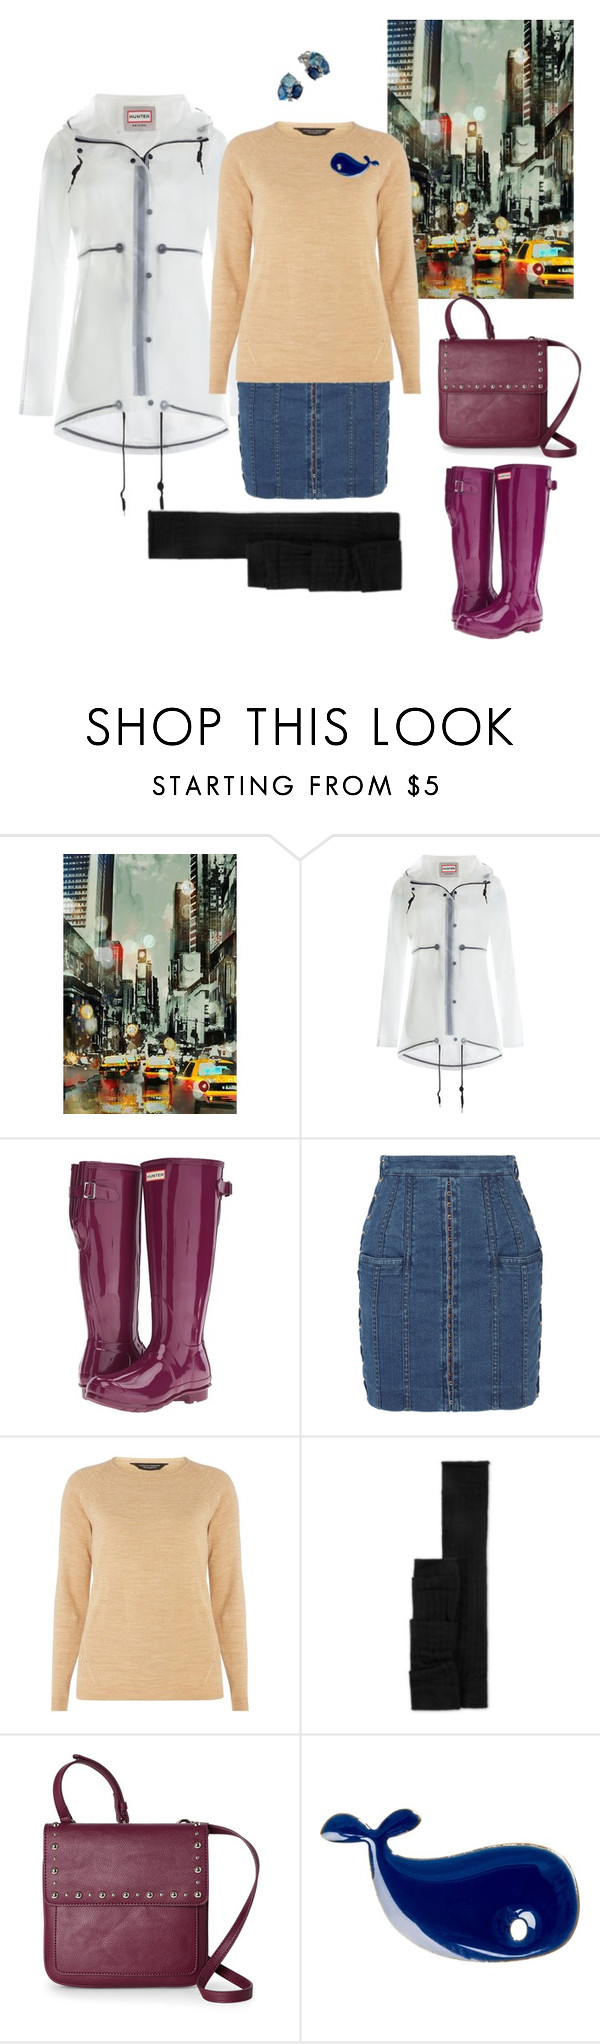 """rain"" by explorer-14541556185 ❤ liked on Polyvore featuring Home Decorators Collection, Hunter, Balmain, Dorothy Perkins, Nine West and Conran"